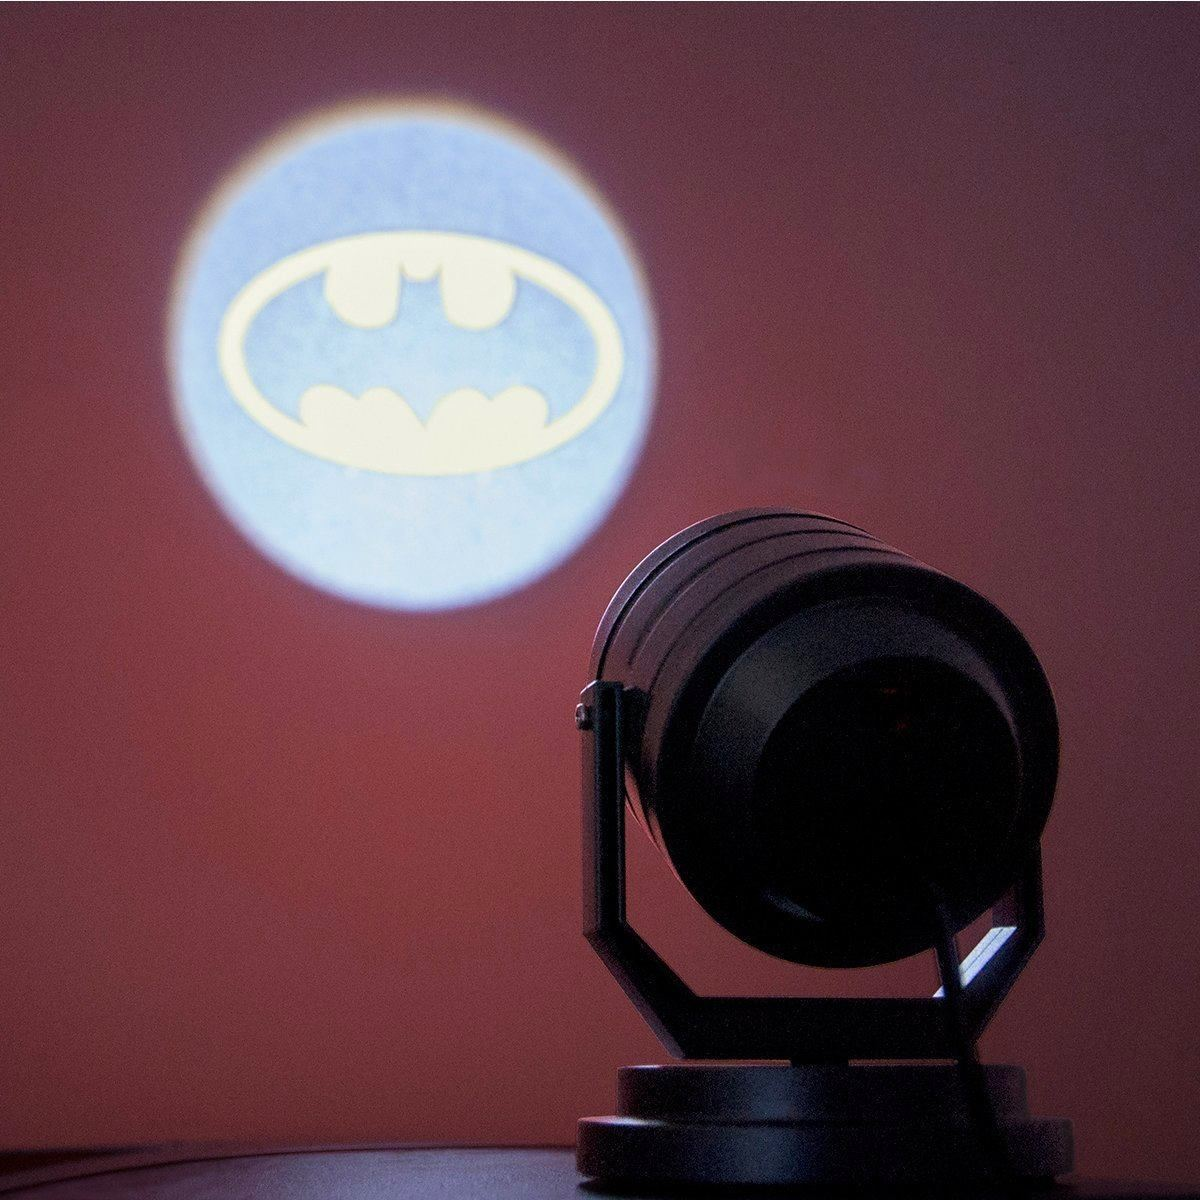 Batman bat signal projector plug in yellow night light lamp dc comics ebay - Batman projector night light ...